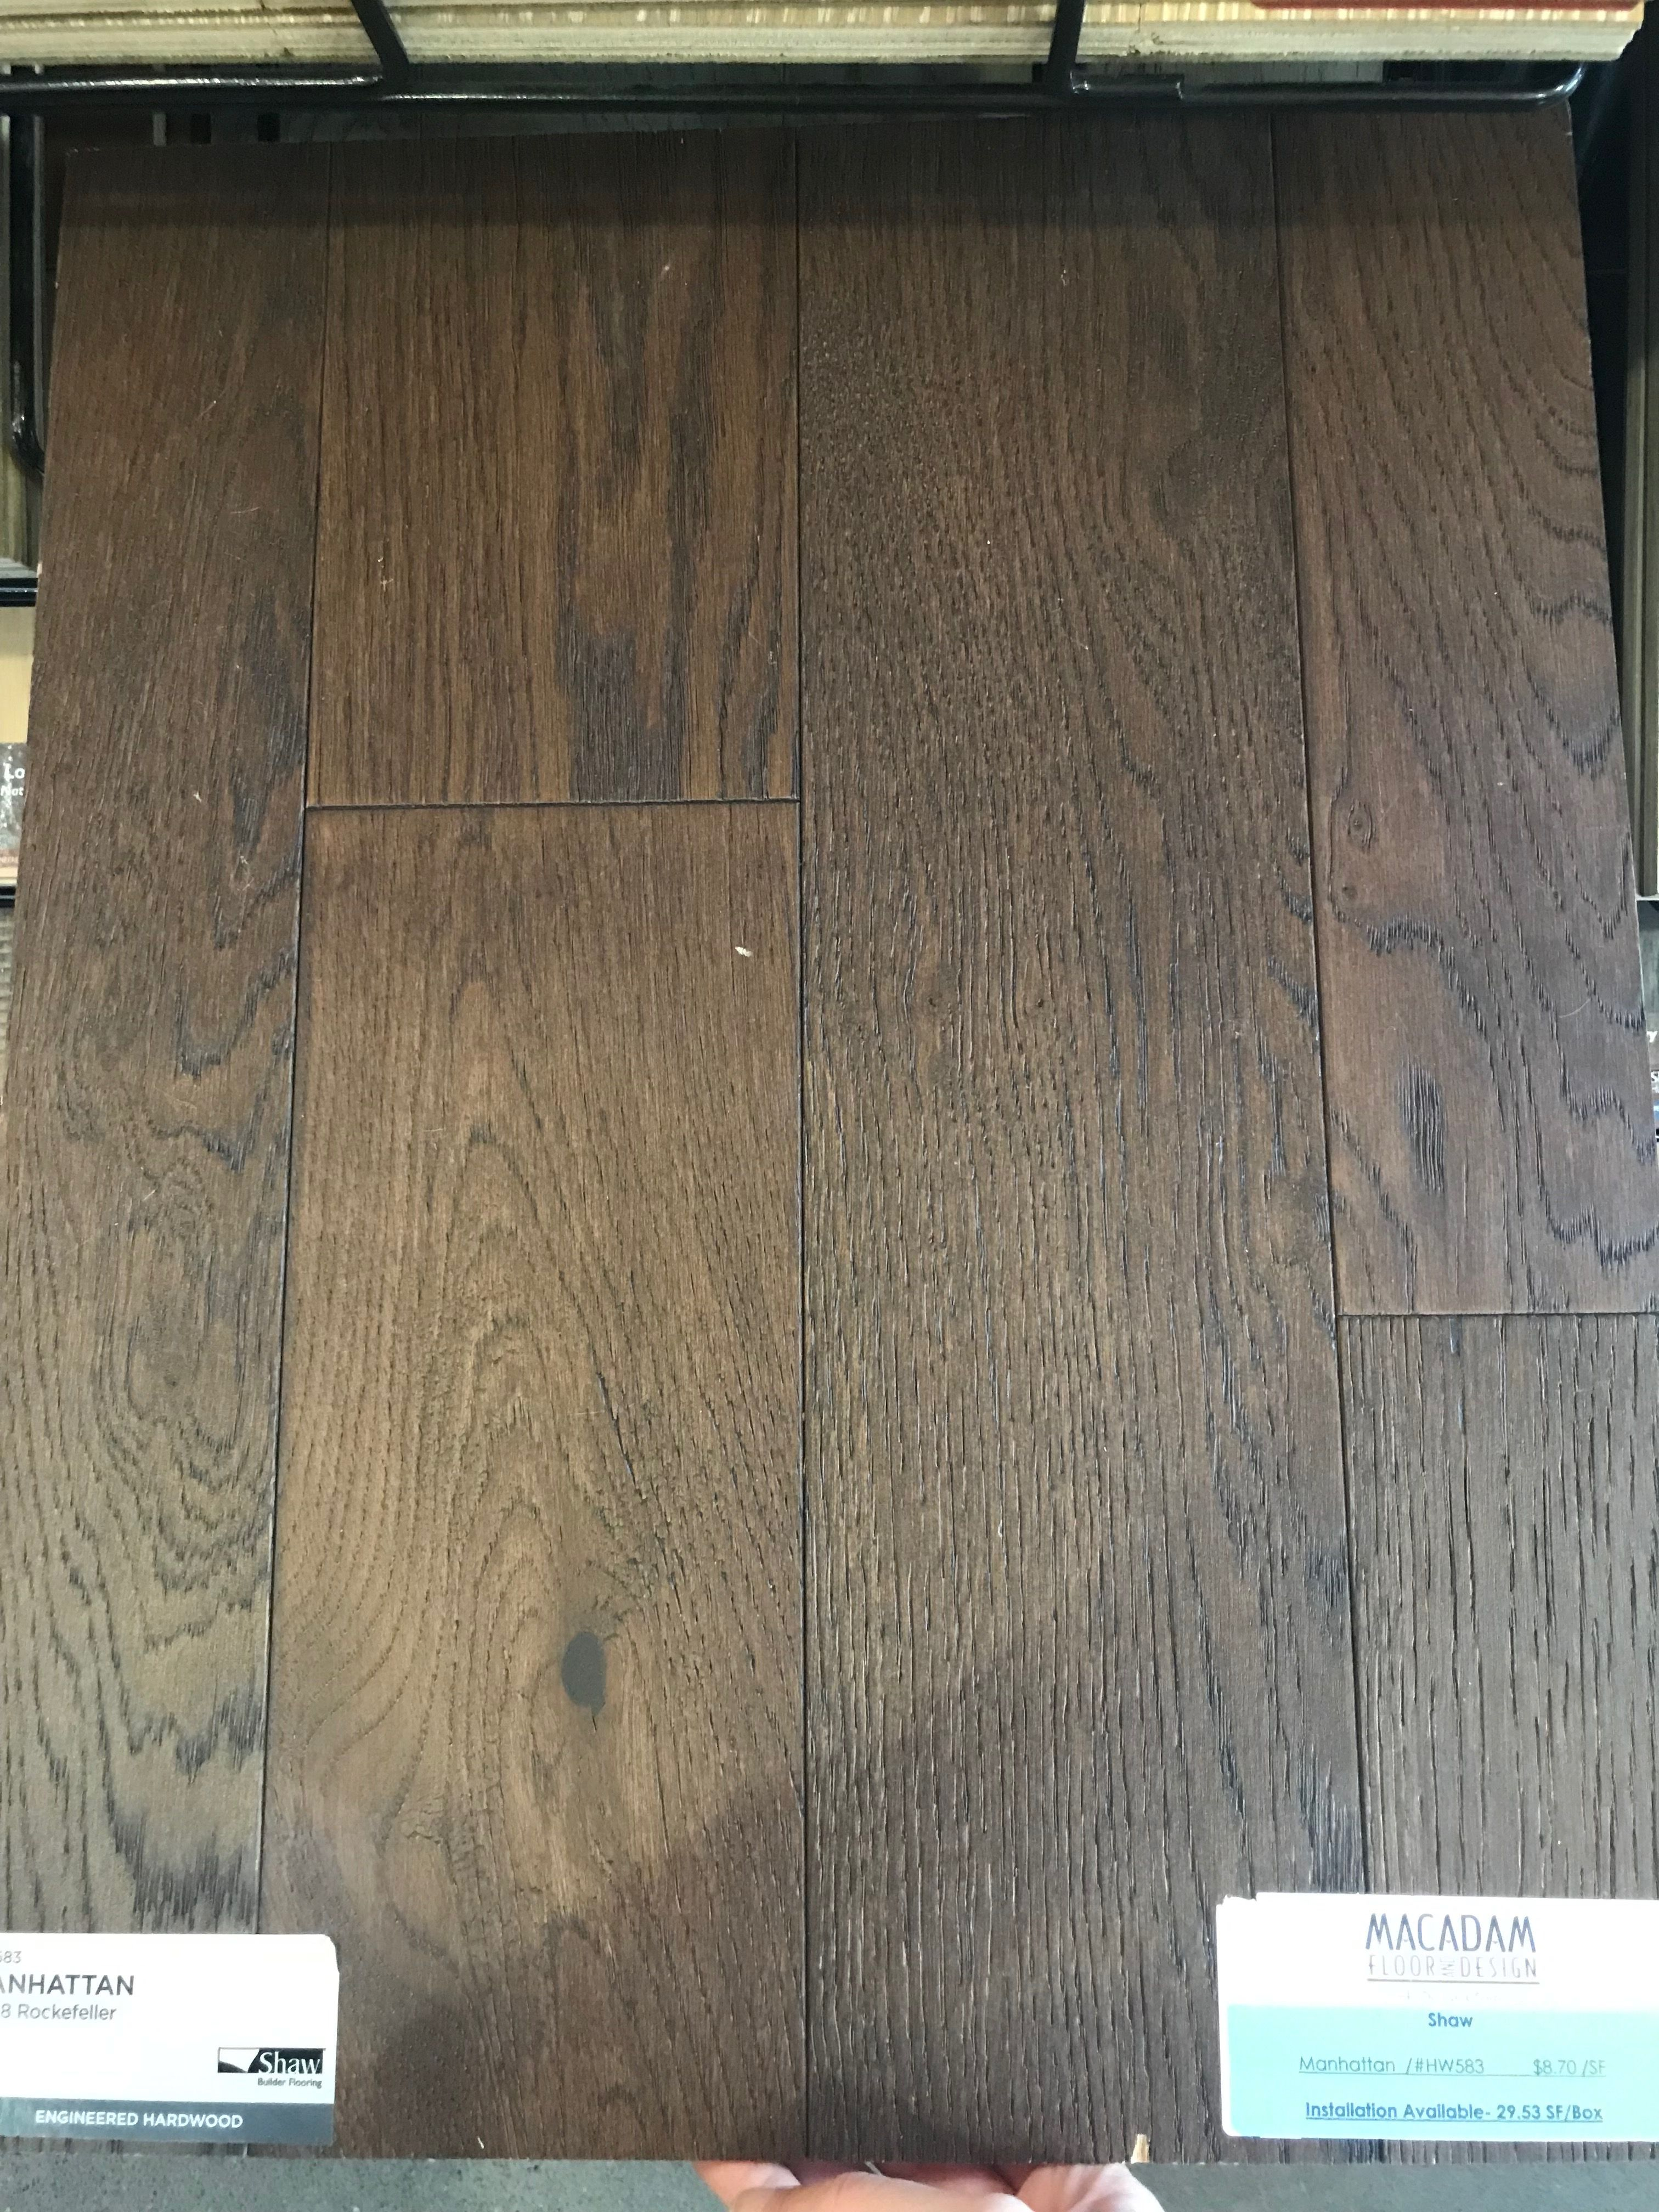 Pin By Sara Fields On Wood Floor Finishes Wood Floor Finishes